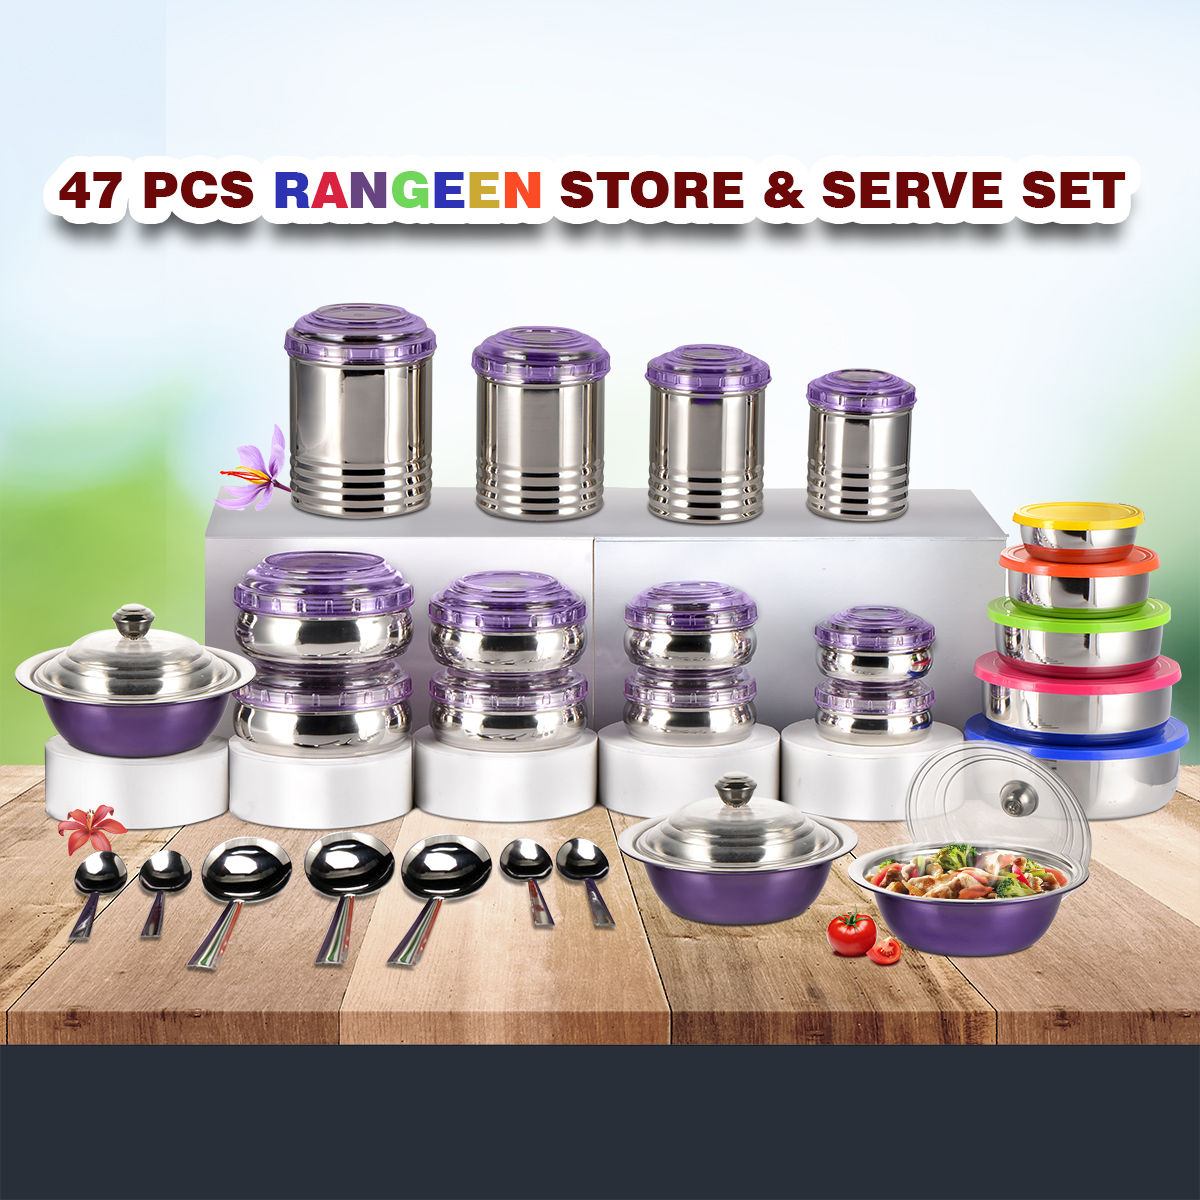 Buy 47 Pcs Rangeen Store Serve Set Online At Best Price In India